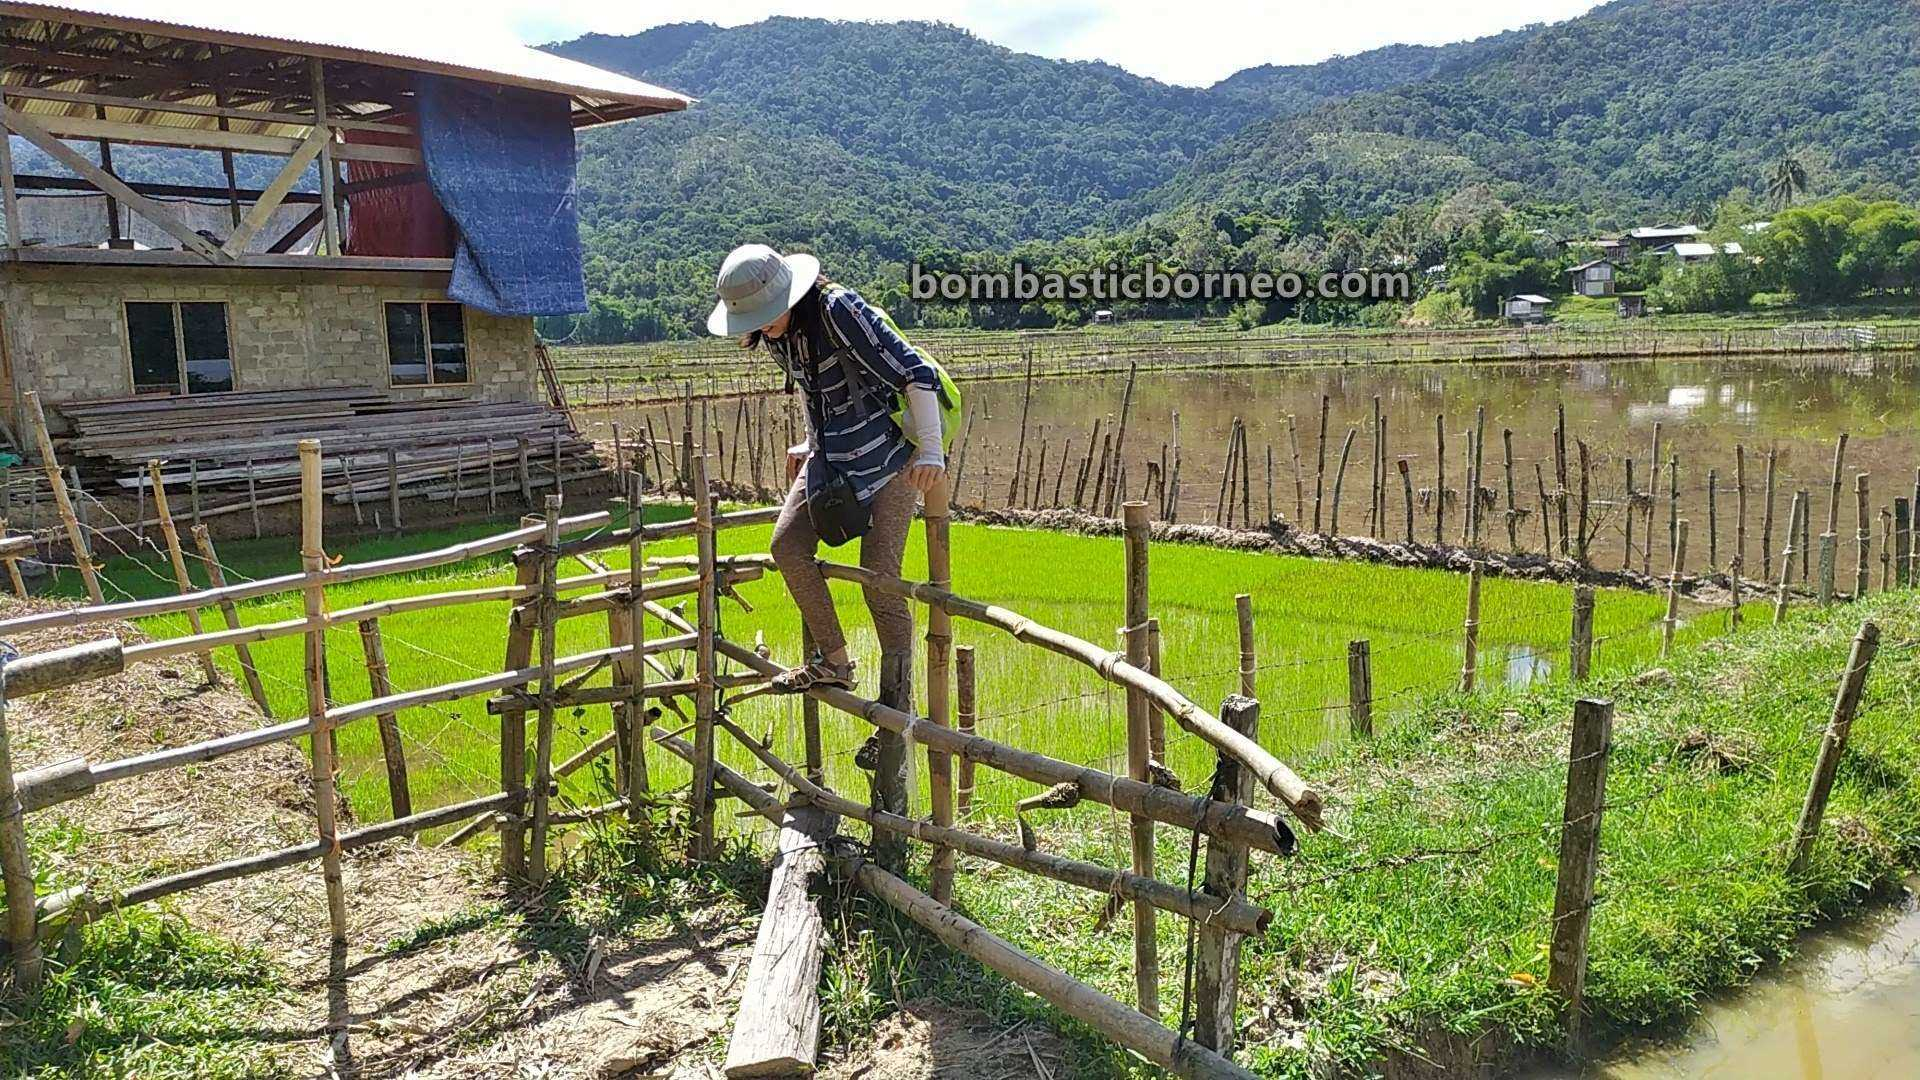 traditional, exploration, village, Maligan Highlands, Long Langai, Lun Bawang, Orang Asal, native, Travel Guide, Cross Border, Borneo, 婆罗洲砂拉越, 巴卡拉兰稻田, 探索马来西亚高原